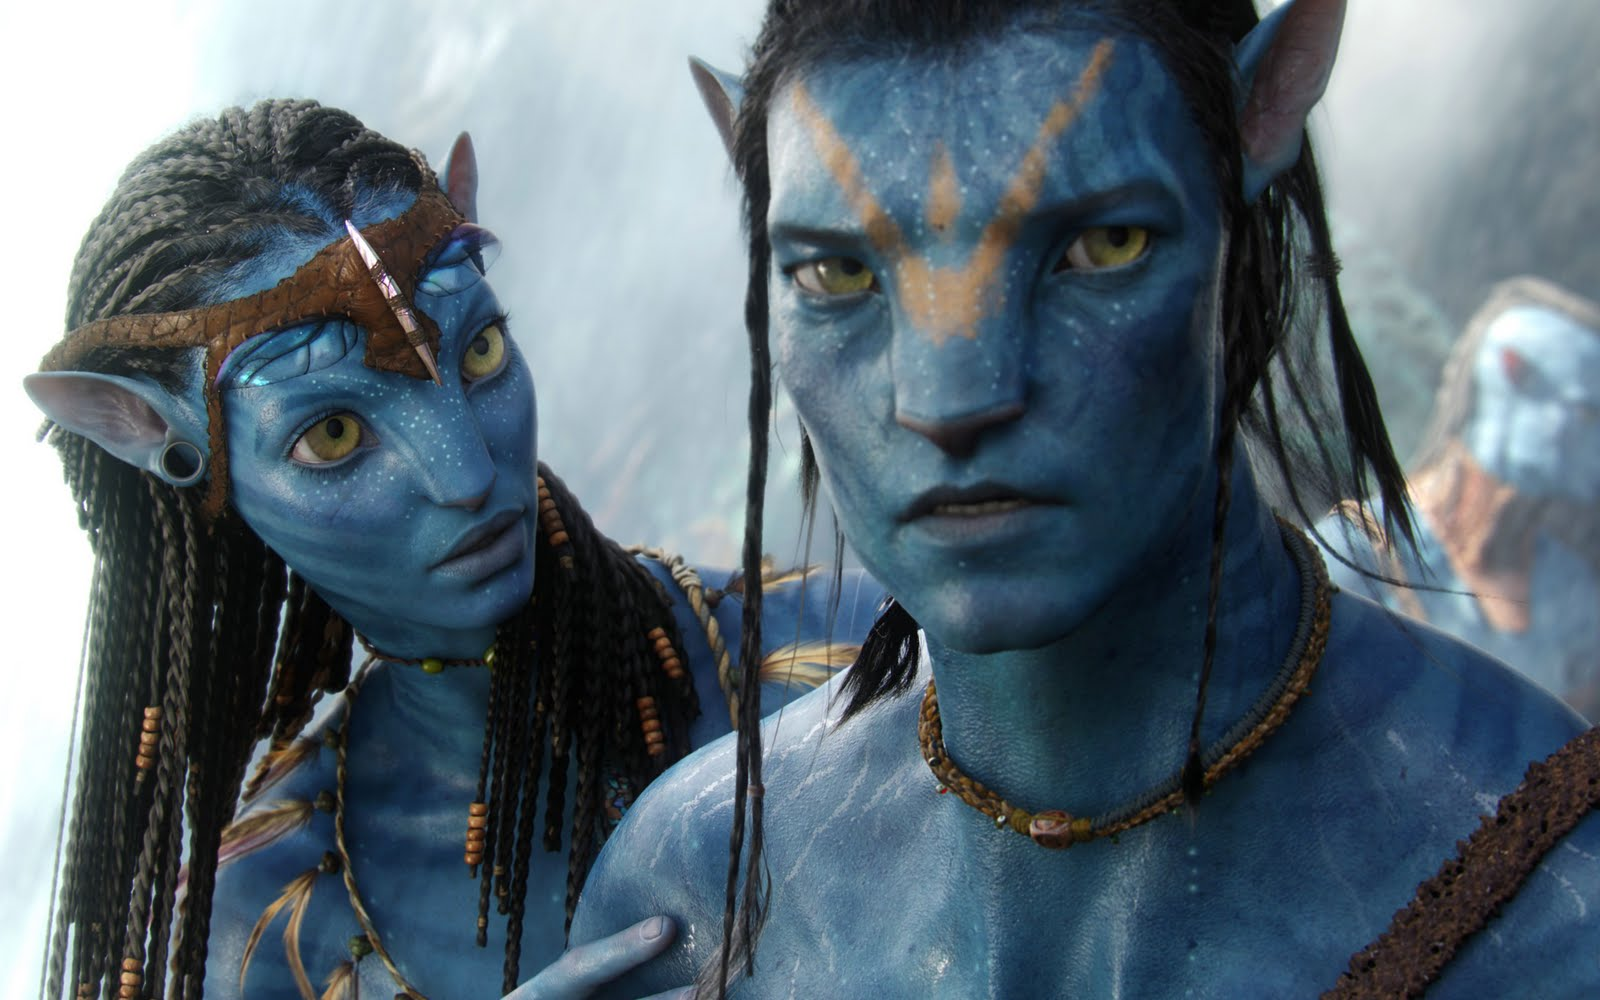 Neytiri and Jake Sully